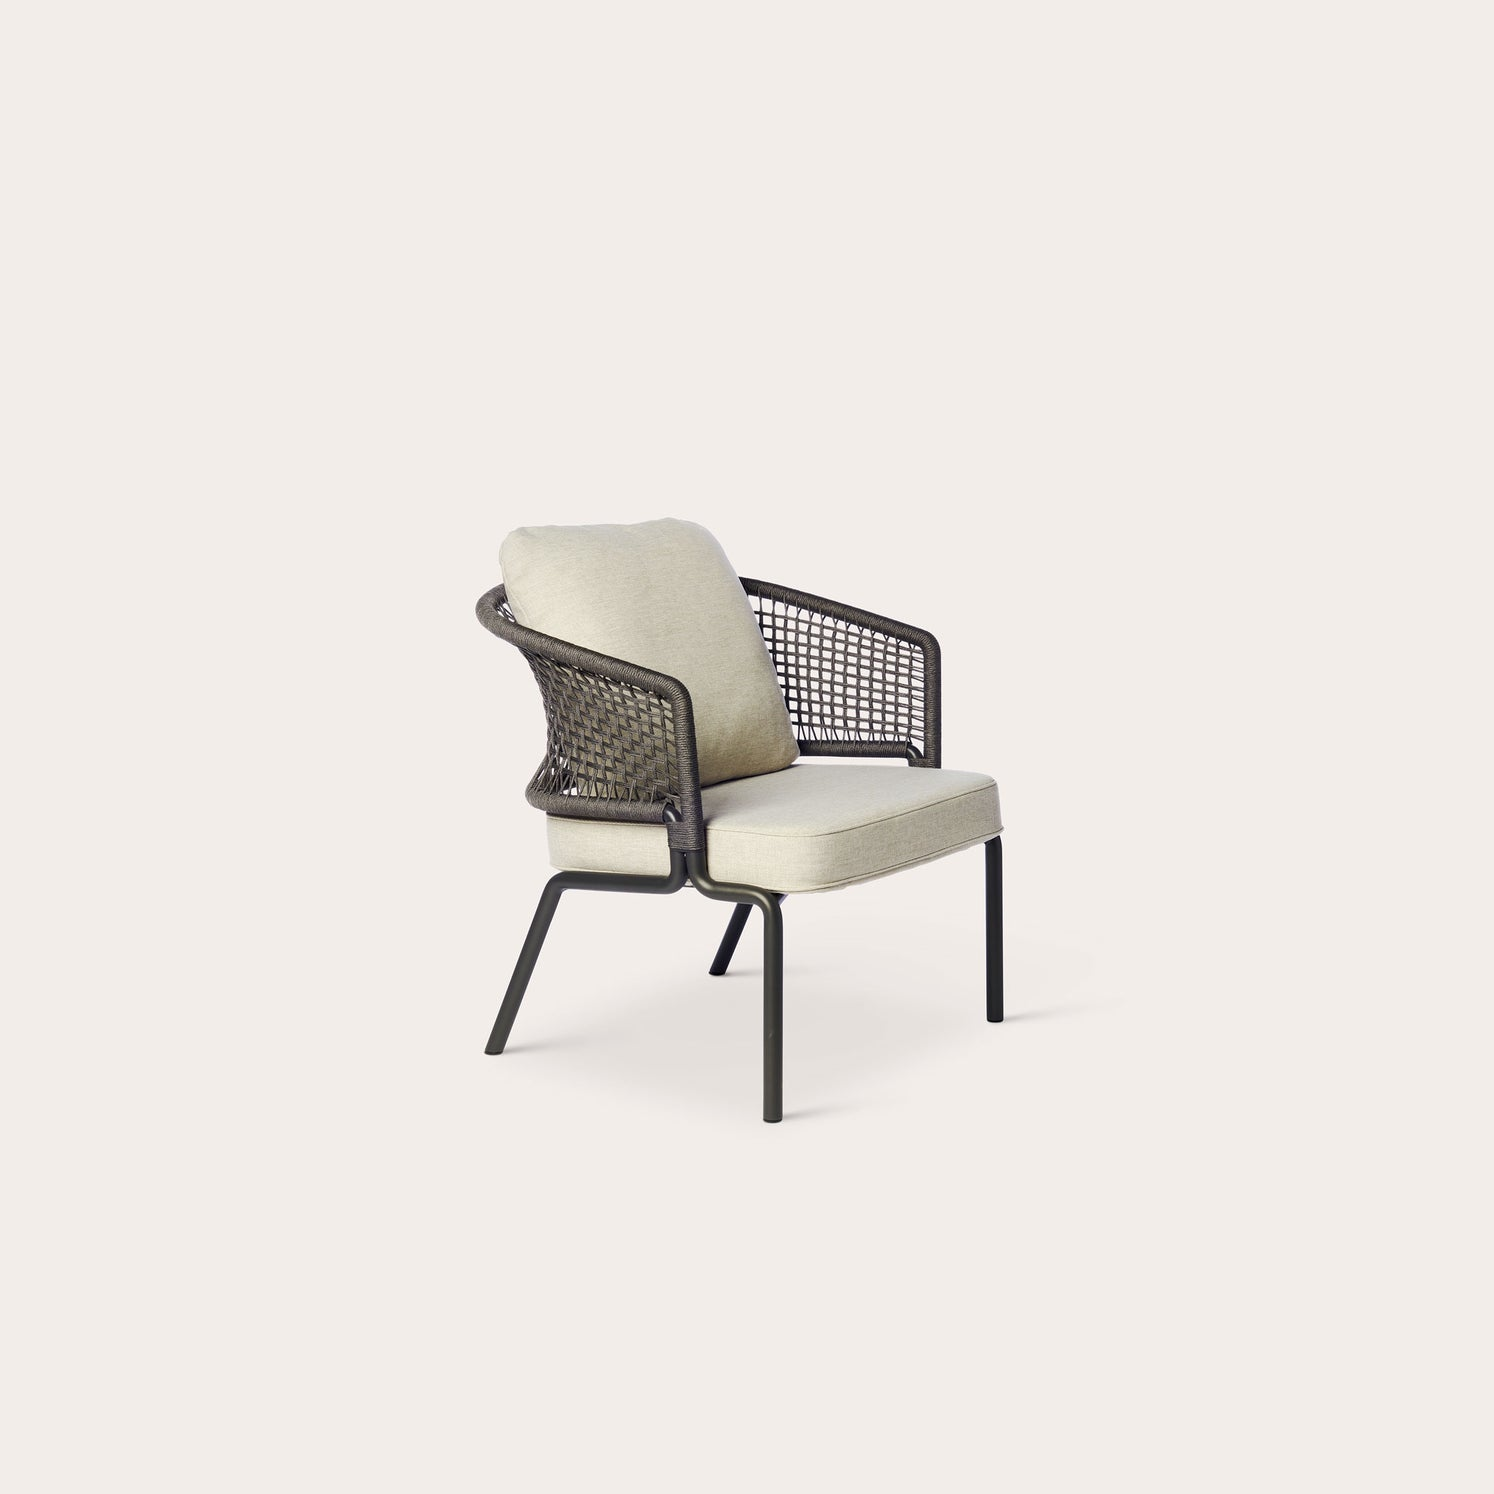 CTR Club Chair Outdoor Piergiorgio Cazzaniga Designer Furniture Sku: 007-200-11107